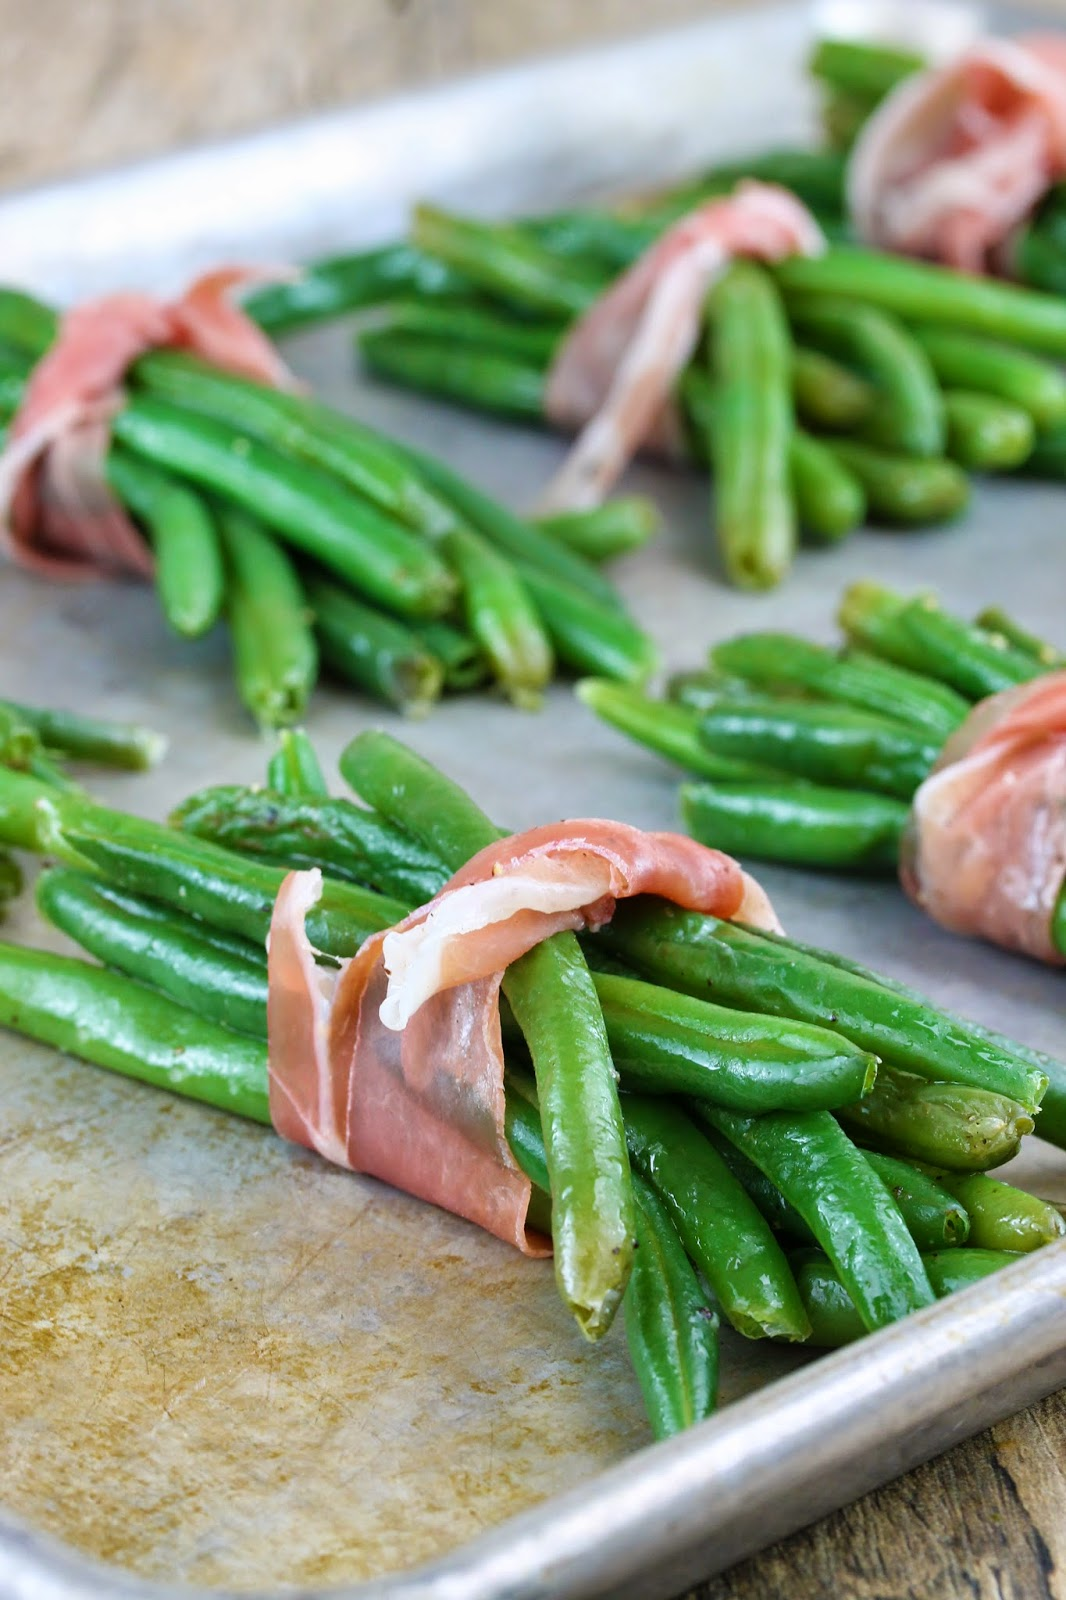 The Stay At Home Chef: Prosciutto Wrapped Green Beans